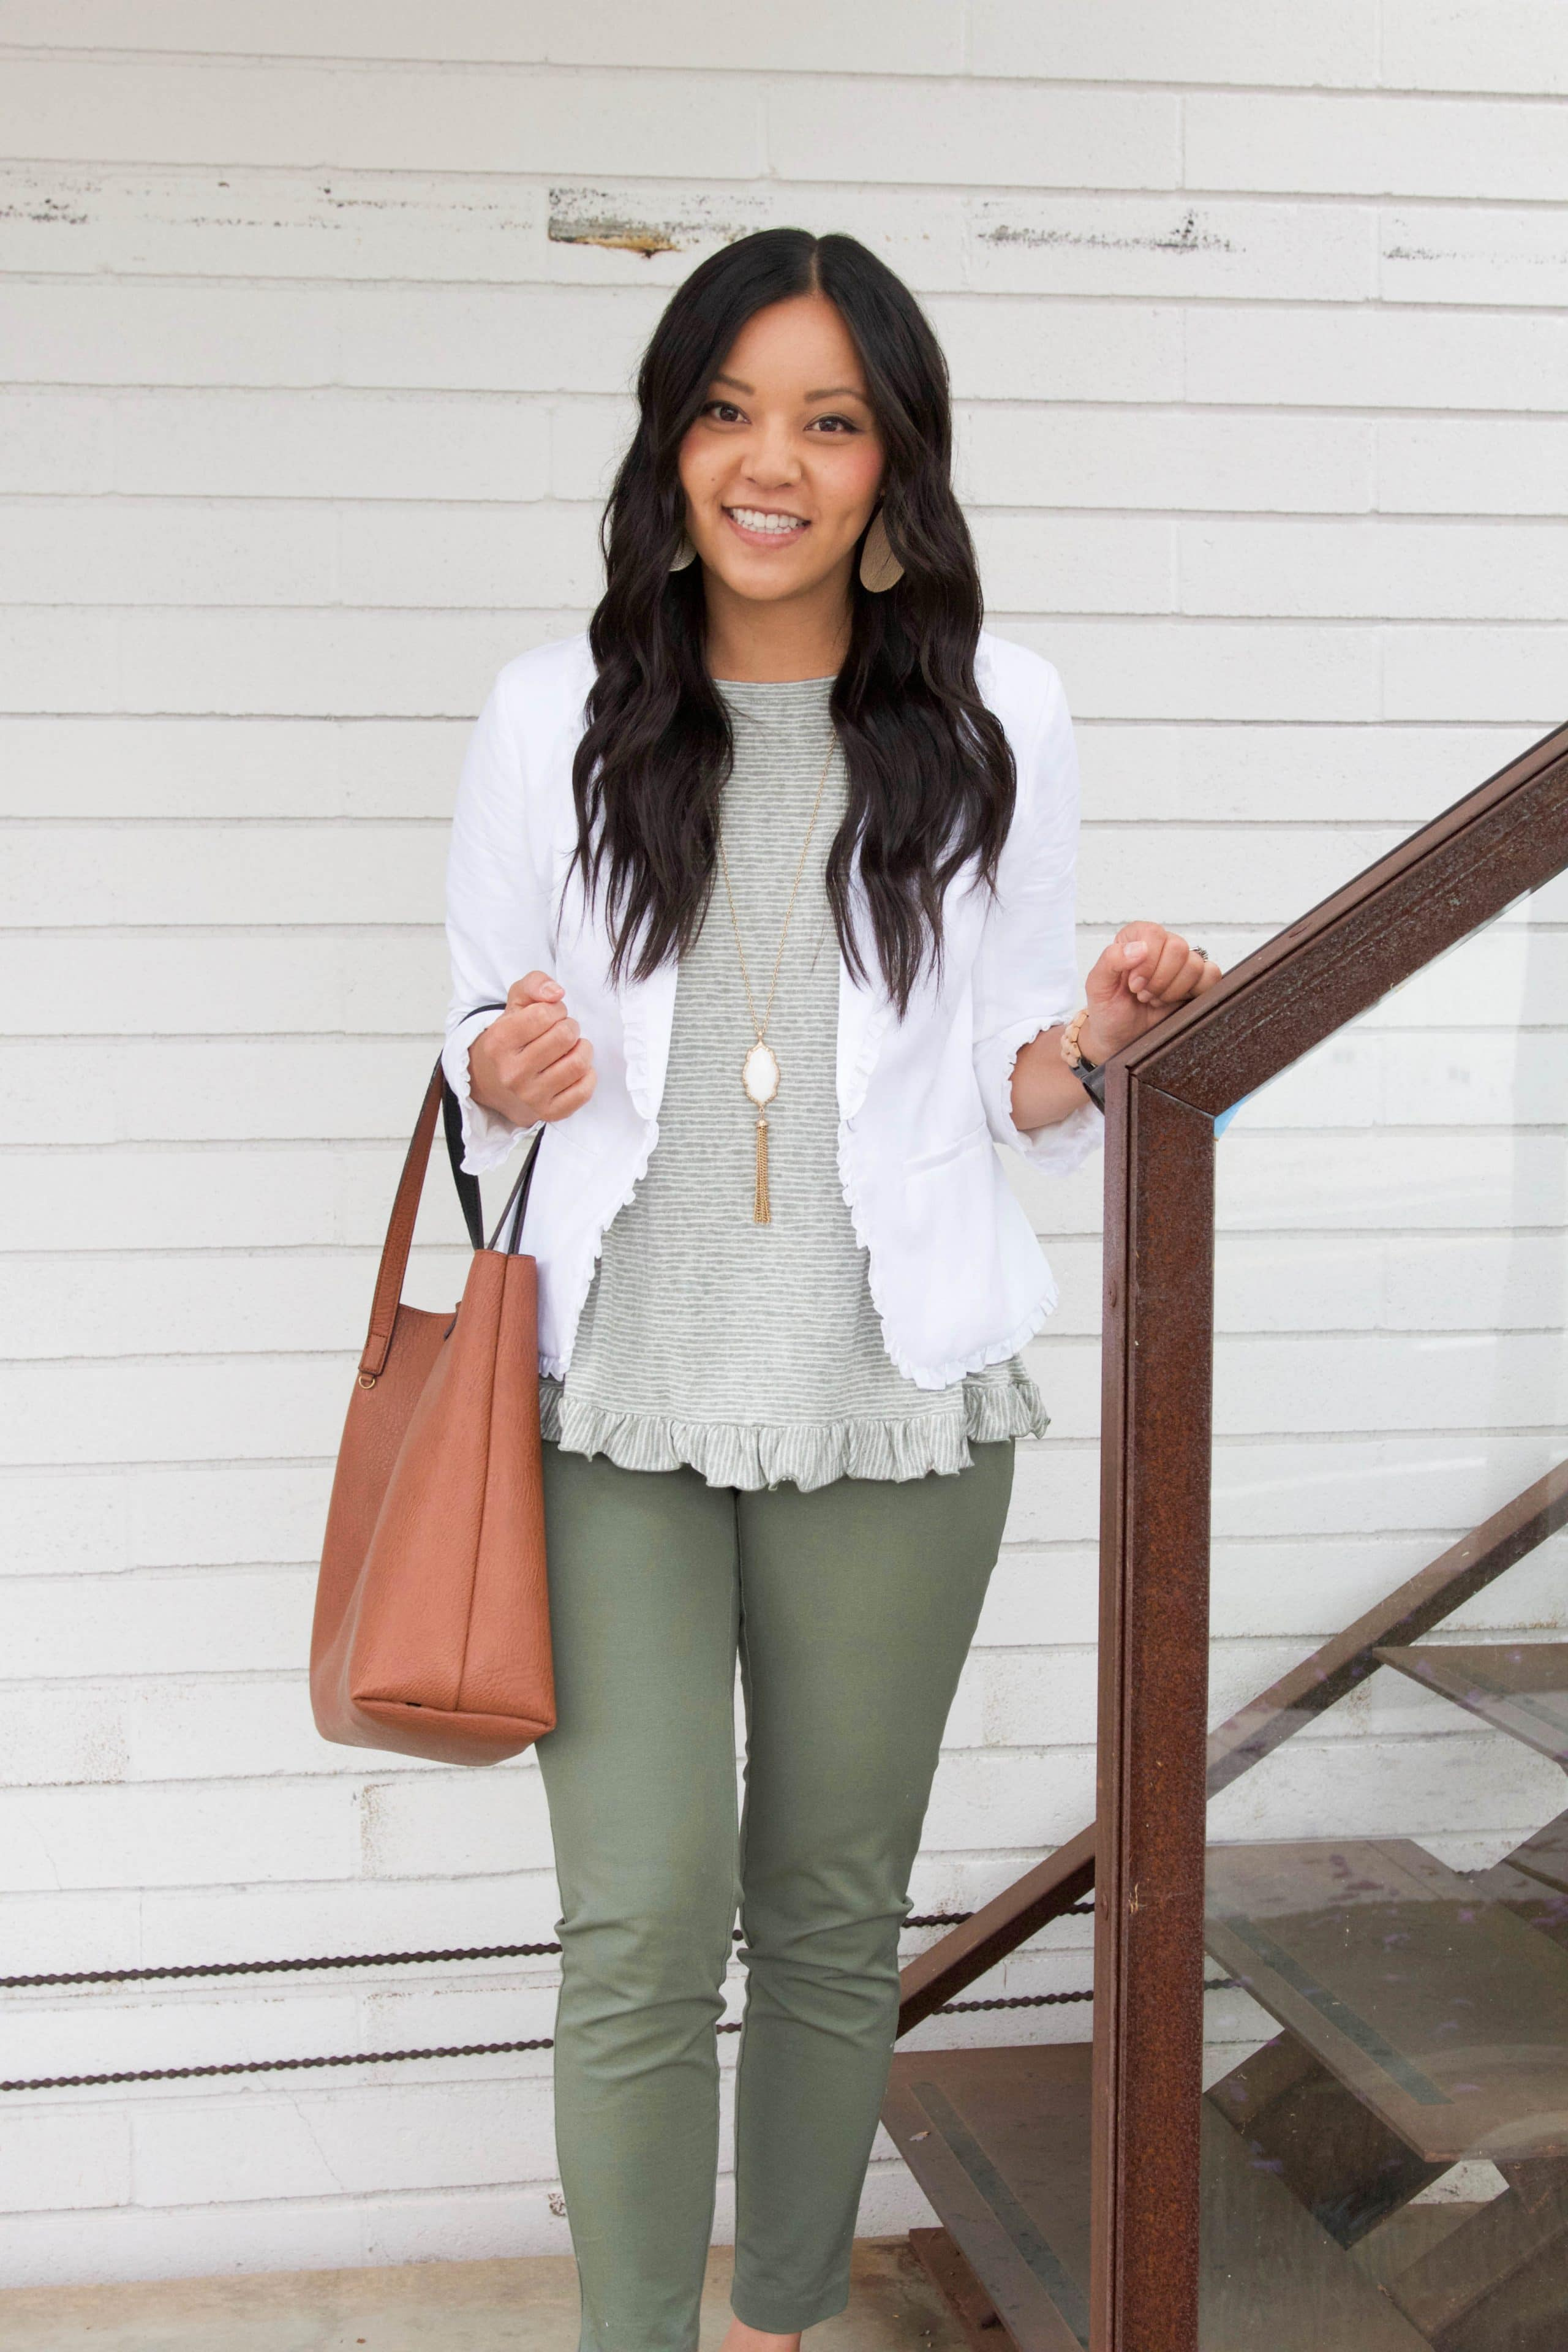 White Blazer + Cognac Bag + Olive Pants + Statement Earrings